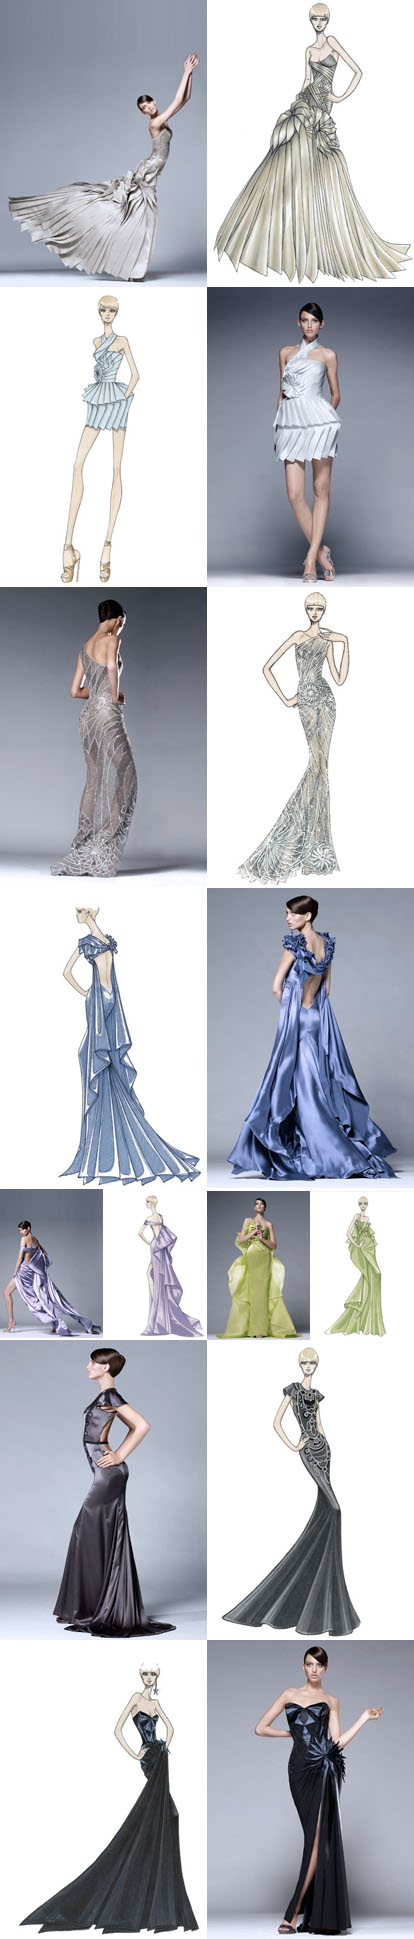 Altlier Versace couture dresses and design sketches by Donatella Versace